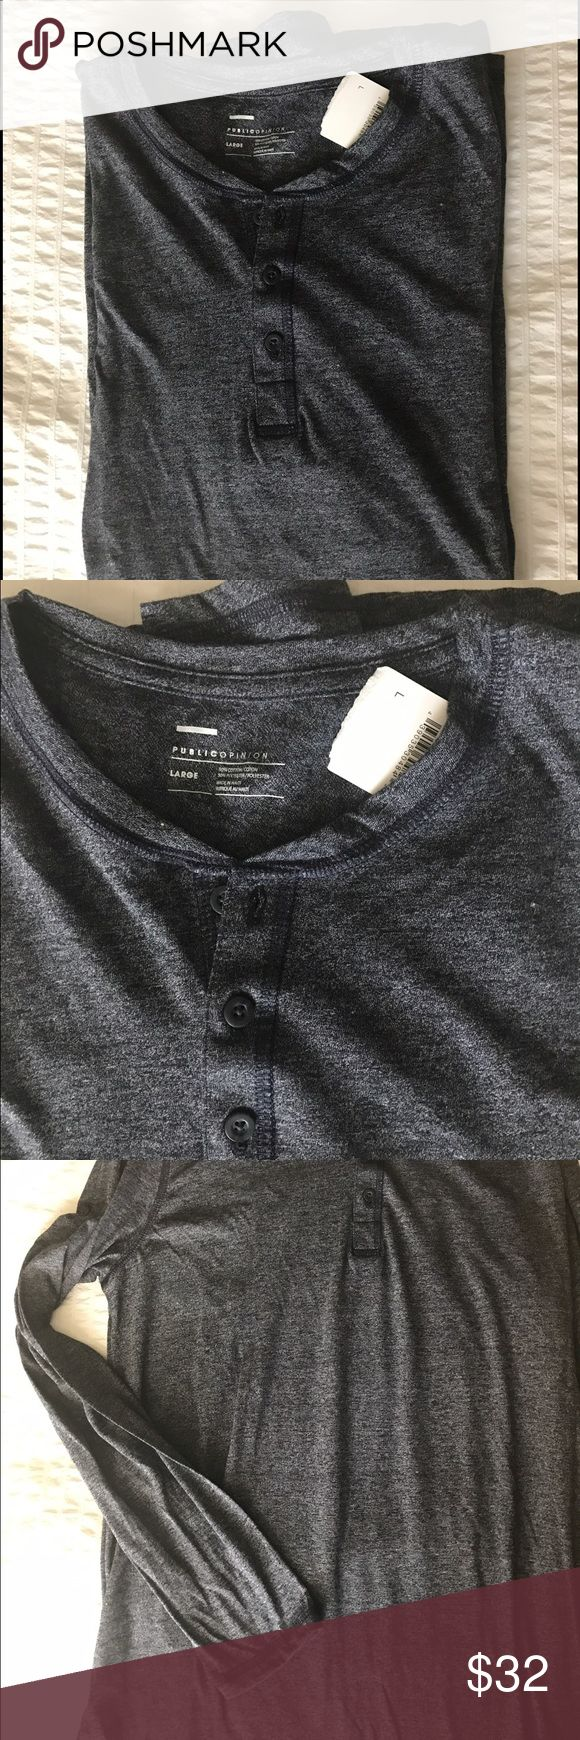 Public Opinion Long Sleeve Shirt Brand new Public Opinion Long Sleeve distressed blue tee shirt. Never worn. 🚫 No trades public opinion Shirts Tees - Long Sleeve